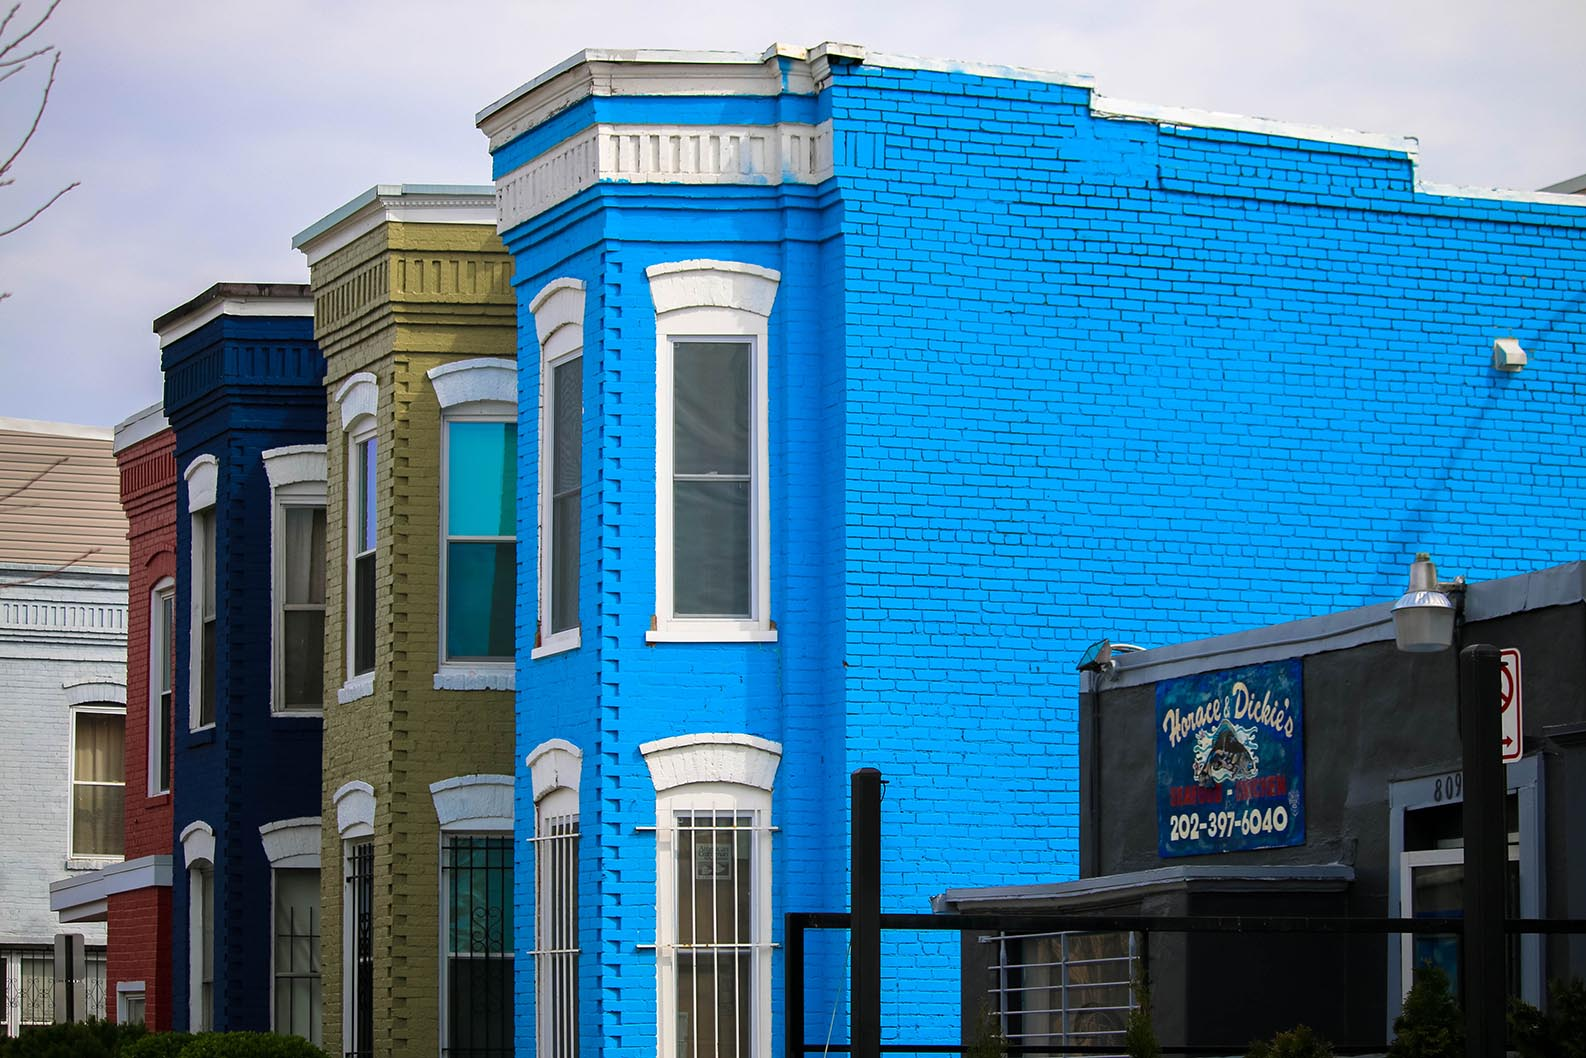 Bright row houses in Atlas District, Washington, D.C.